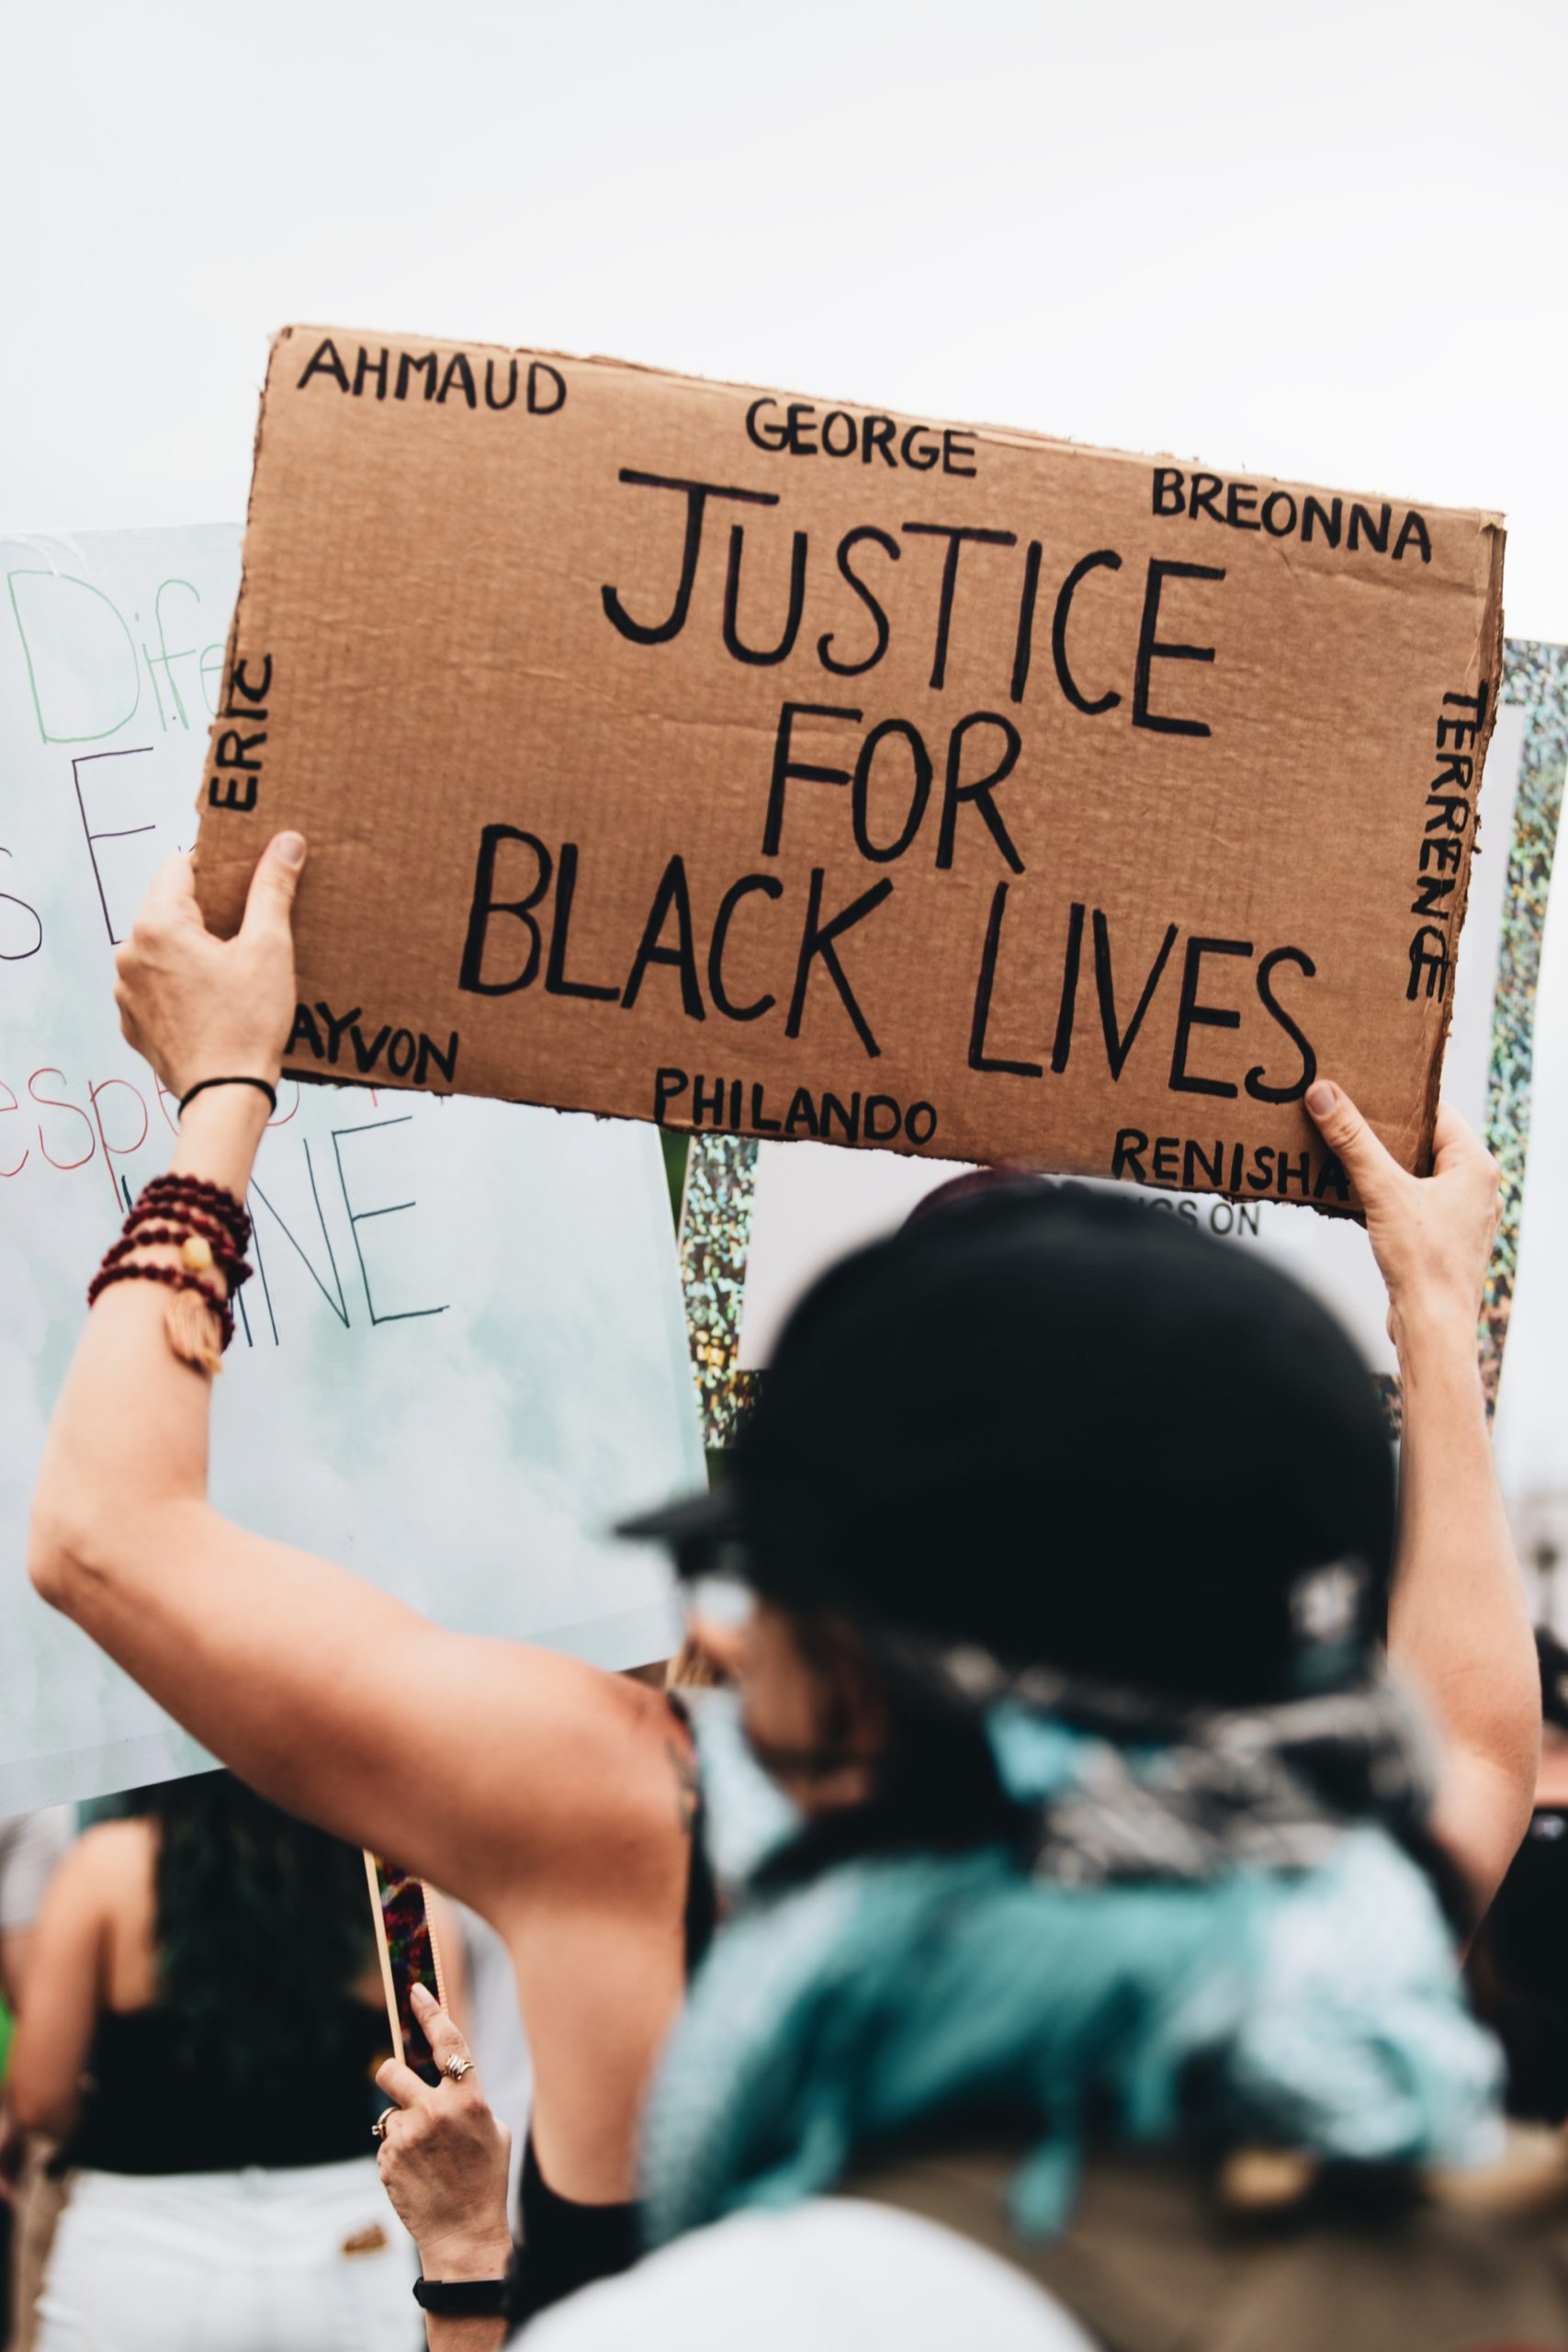 A Black Lives Matter Protest Image